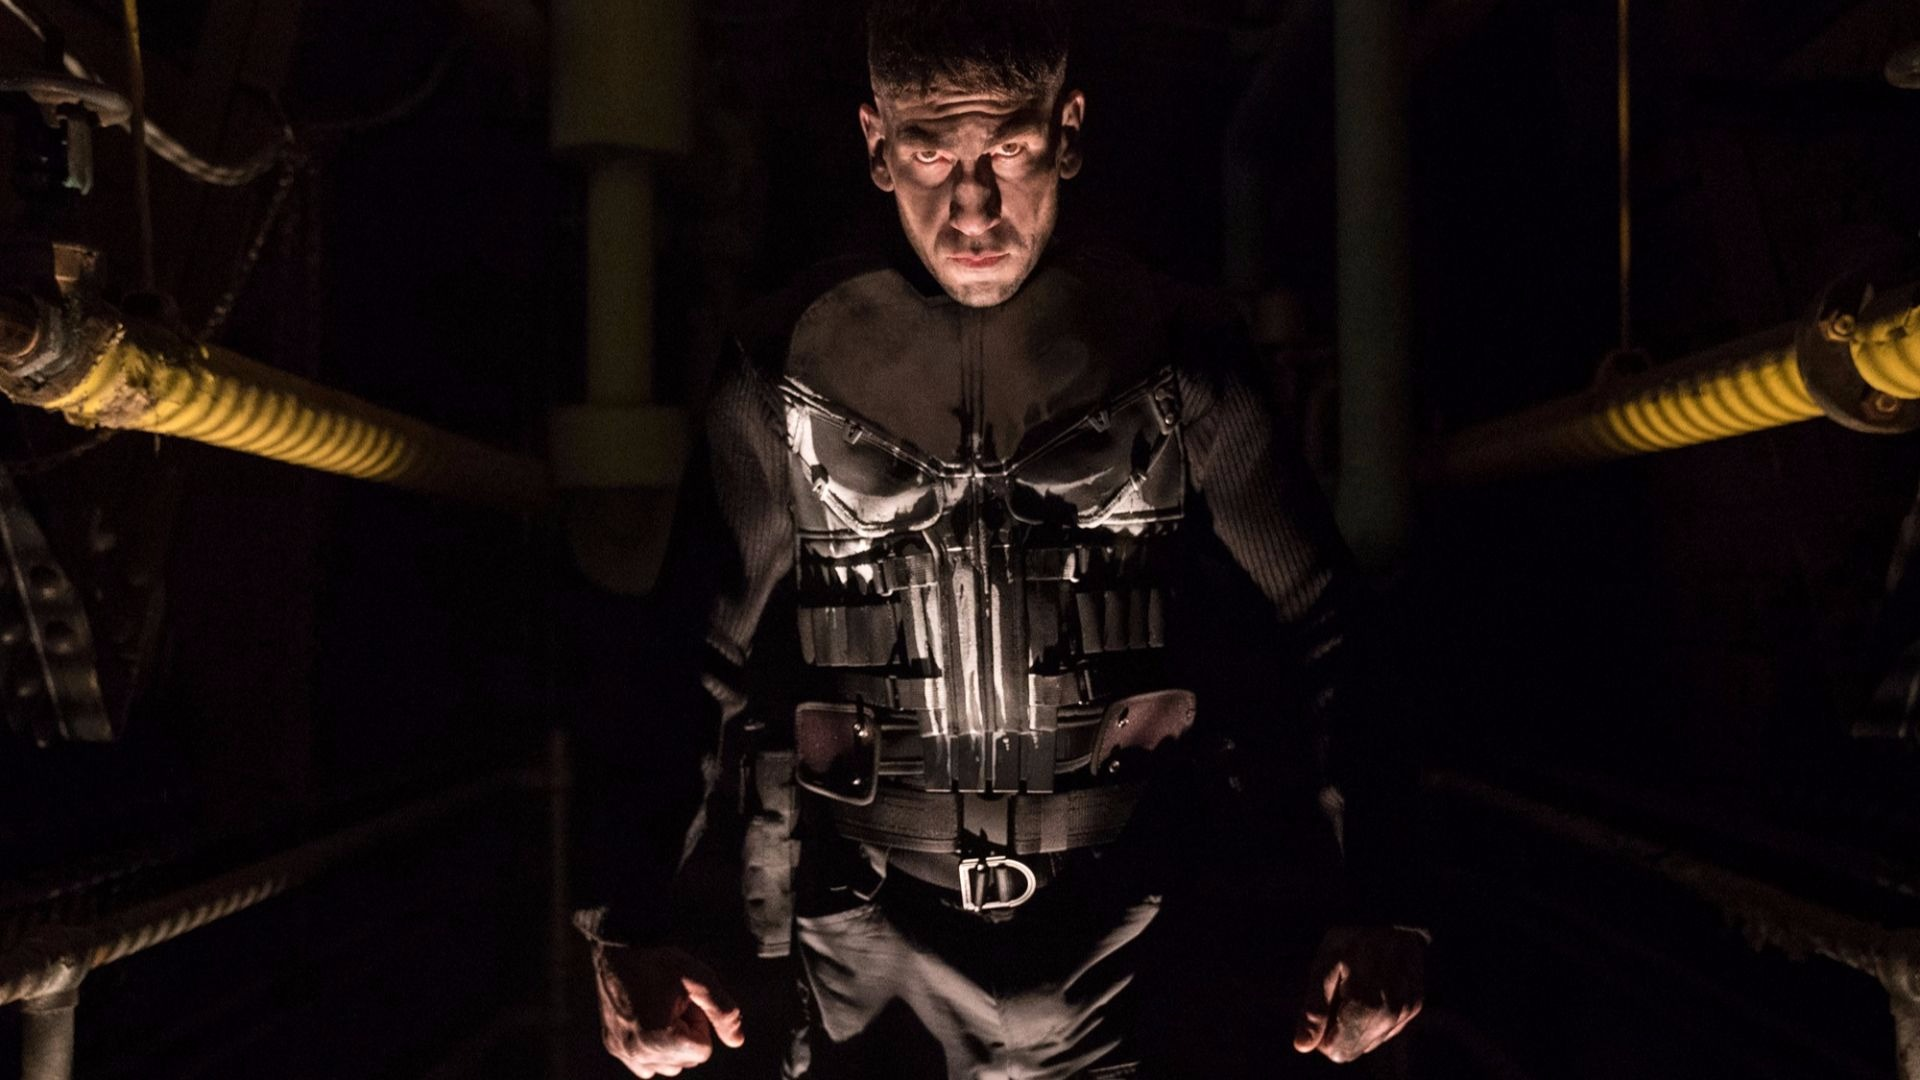 Jon Bernthal as The Punisher.